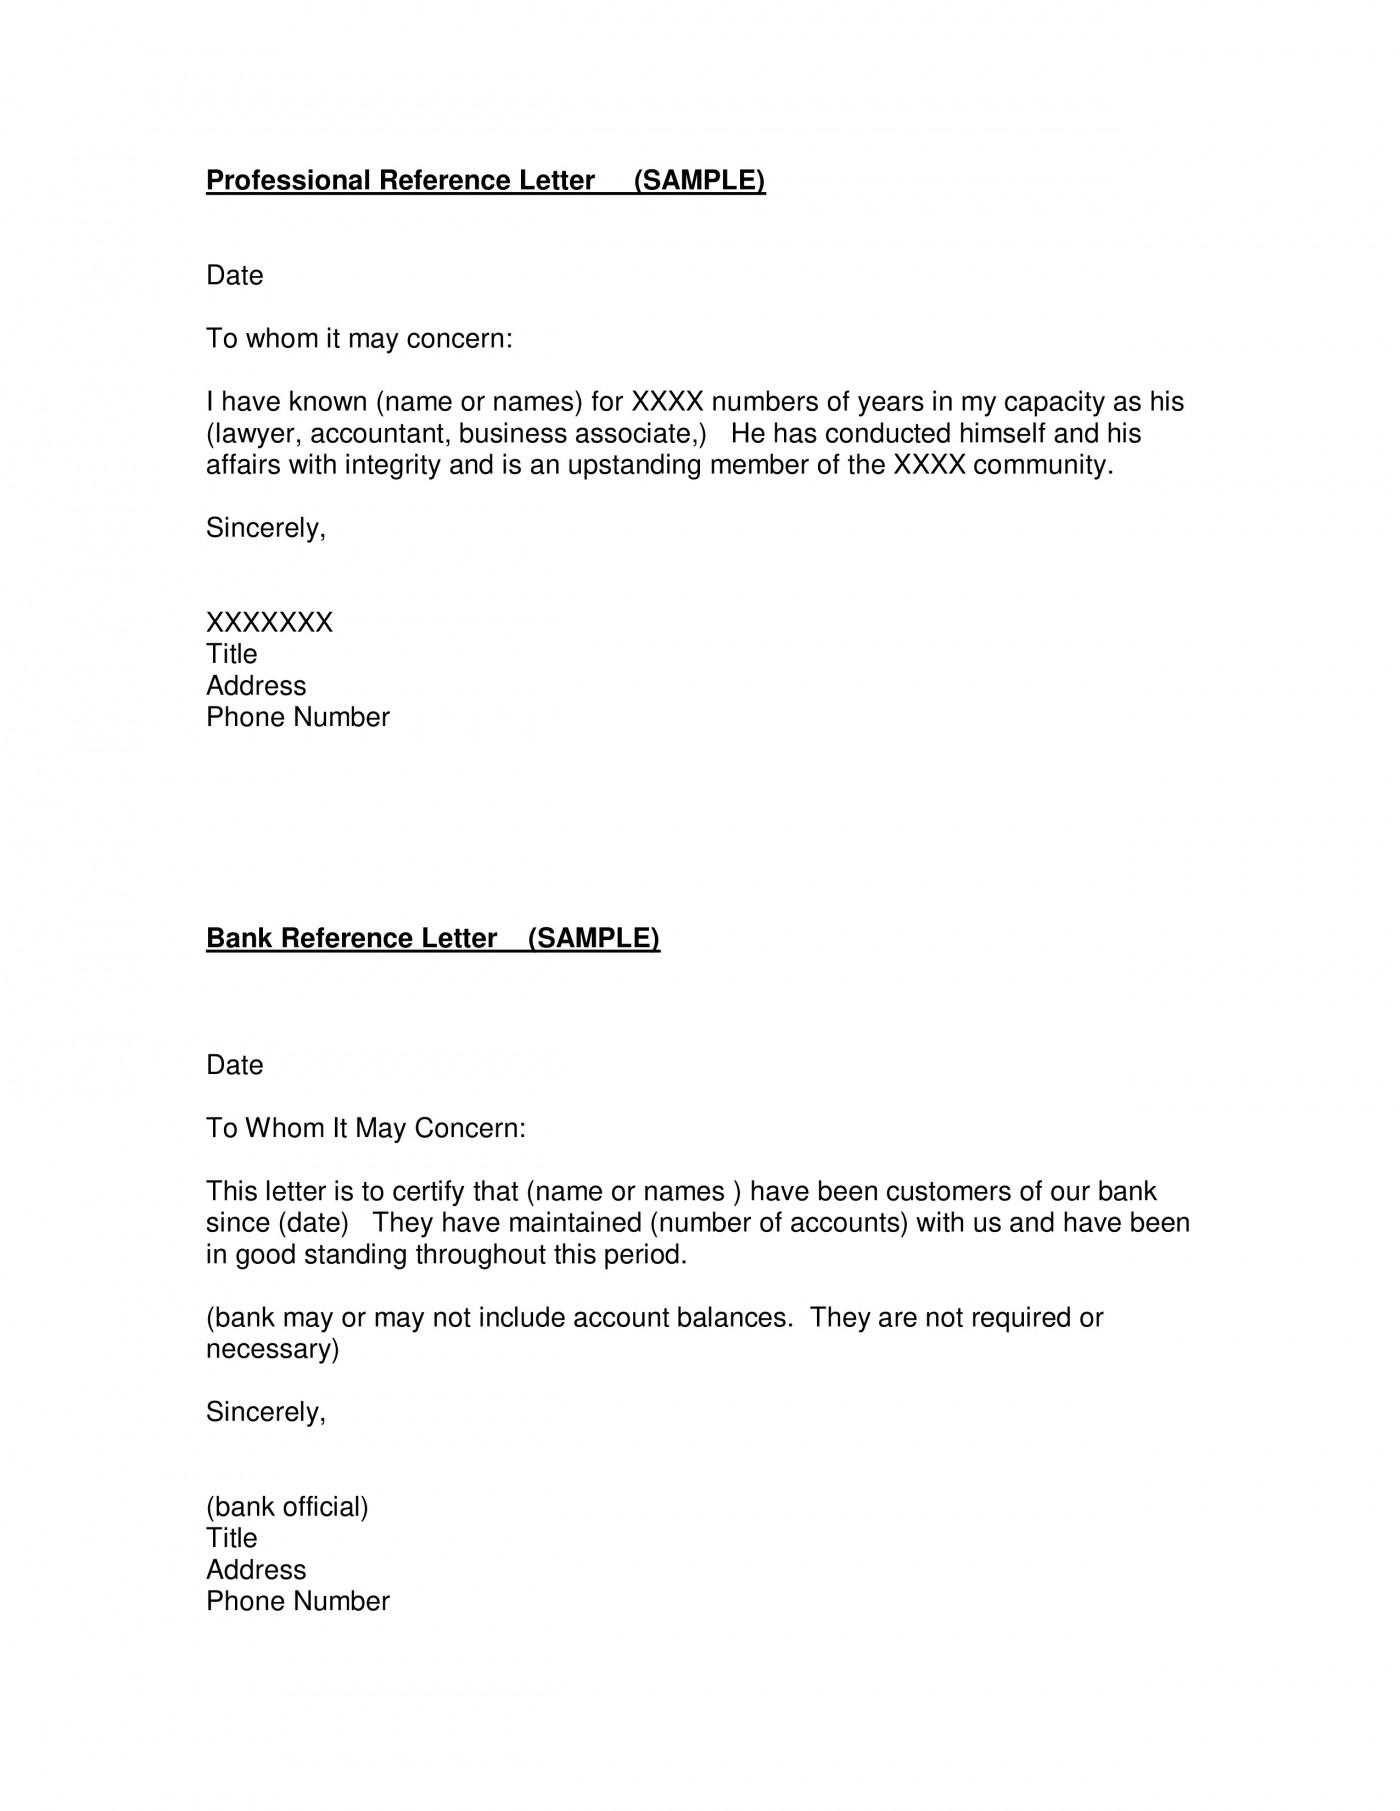 005 Stunning Professional Reference Letter Template Design  Nursing Free Character1400